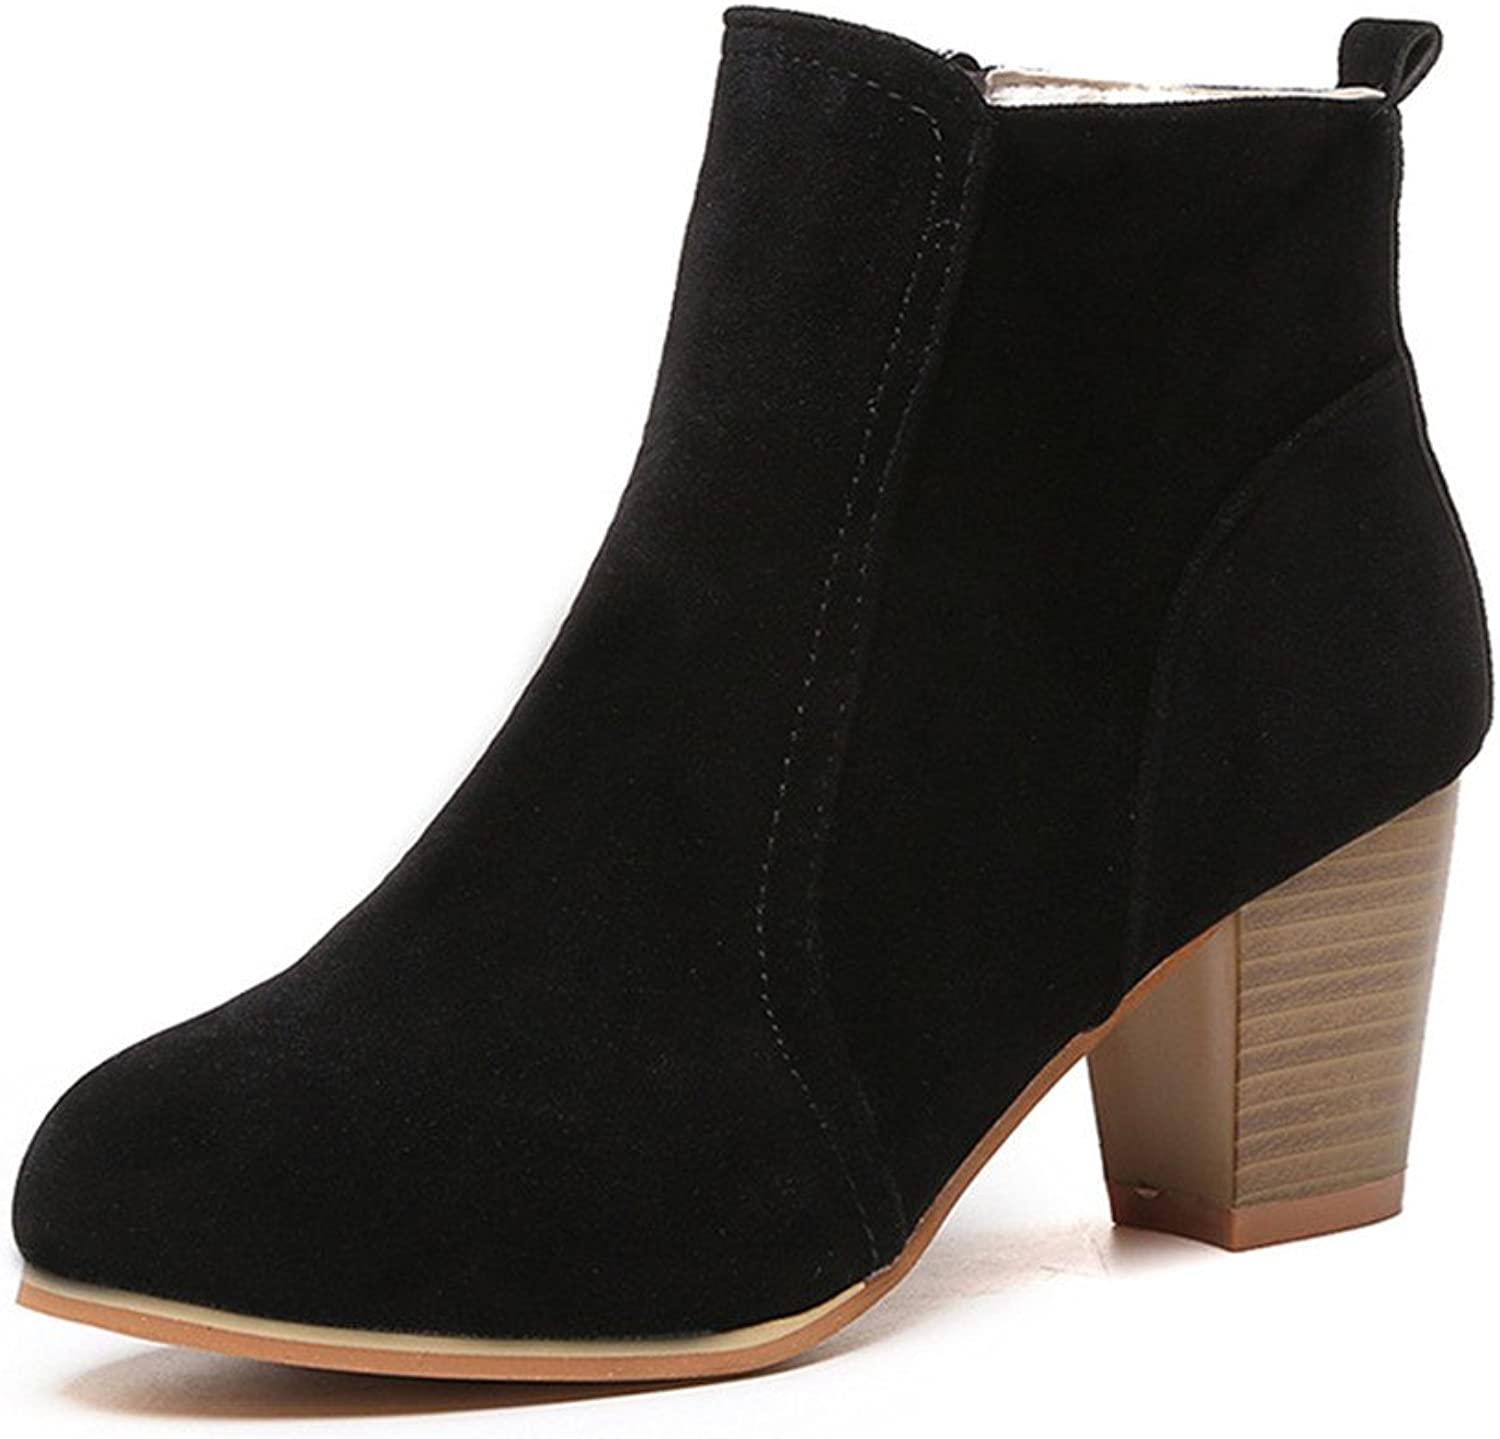 Julitia Women Heels Ankle Boots for Women 2019 New Faux Suede Female Boots Autumn